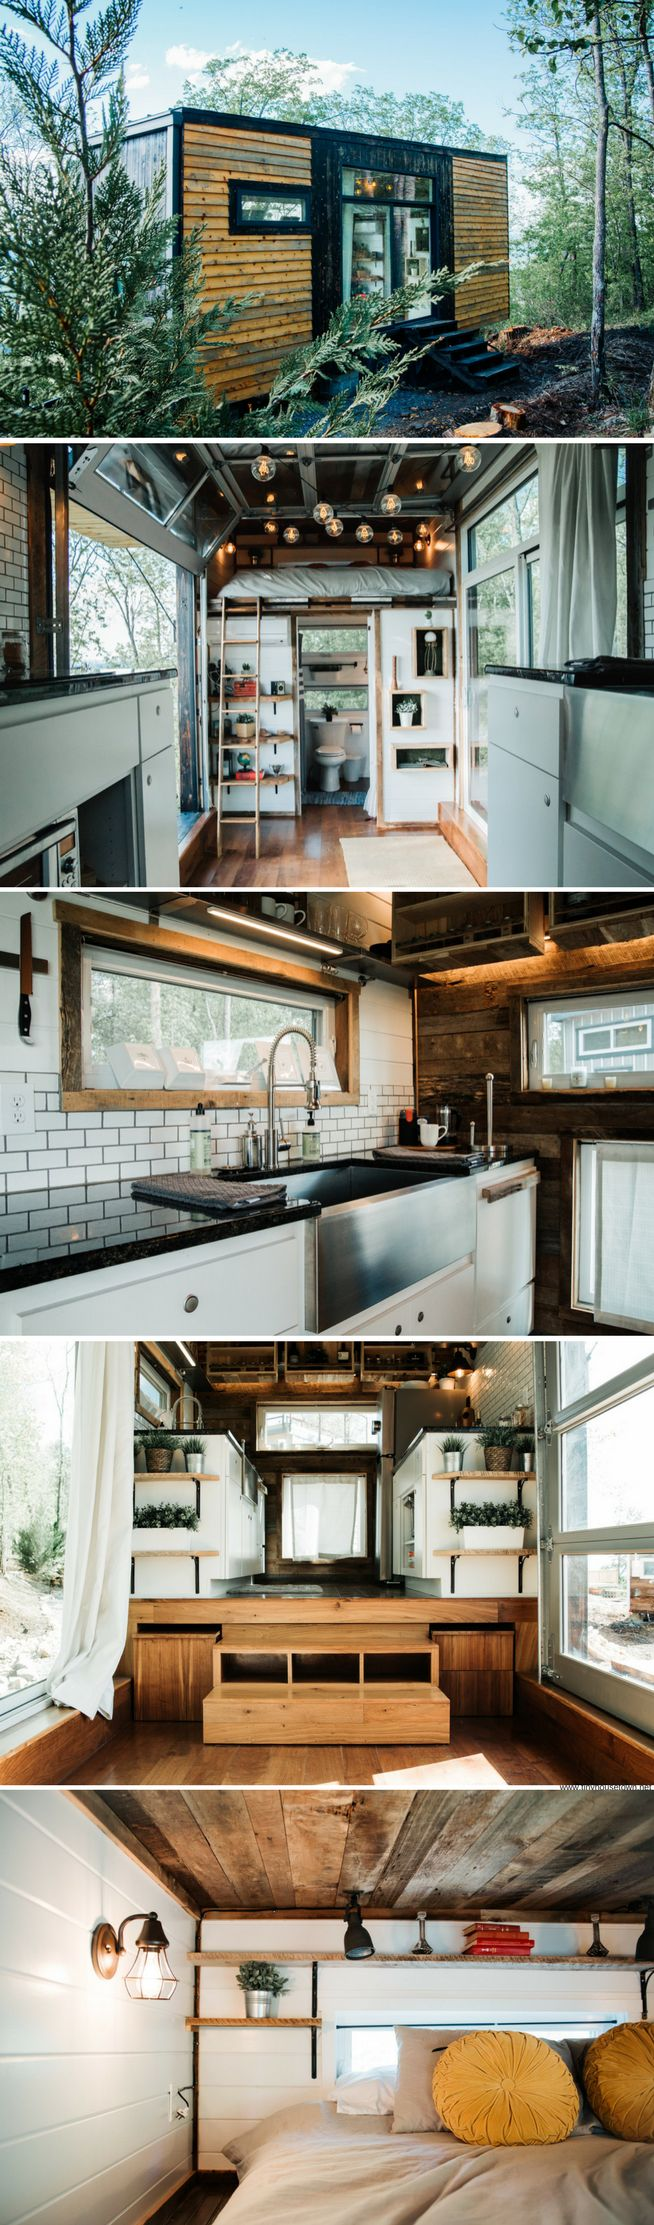 View toward kitchen the alpha tiny home by new frontier tiny homes - The Alpha A Beautiful Modern And Rustic Tiny House Available For Rent At Live A Little Chat Via Airbnb Designed And Built By New Frontier Tiny Homes